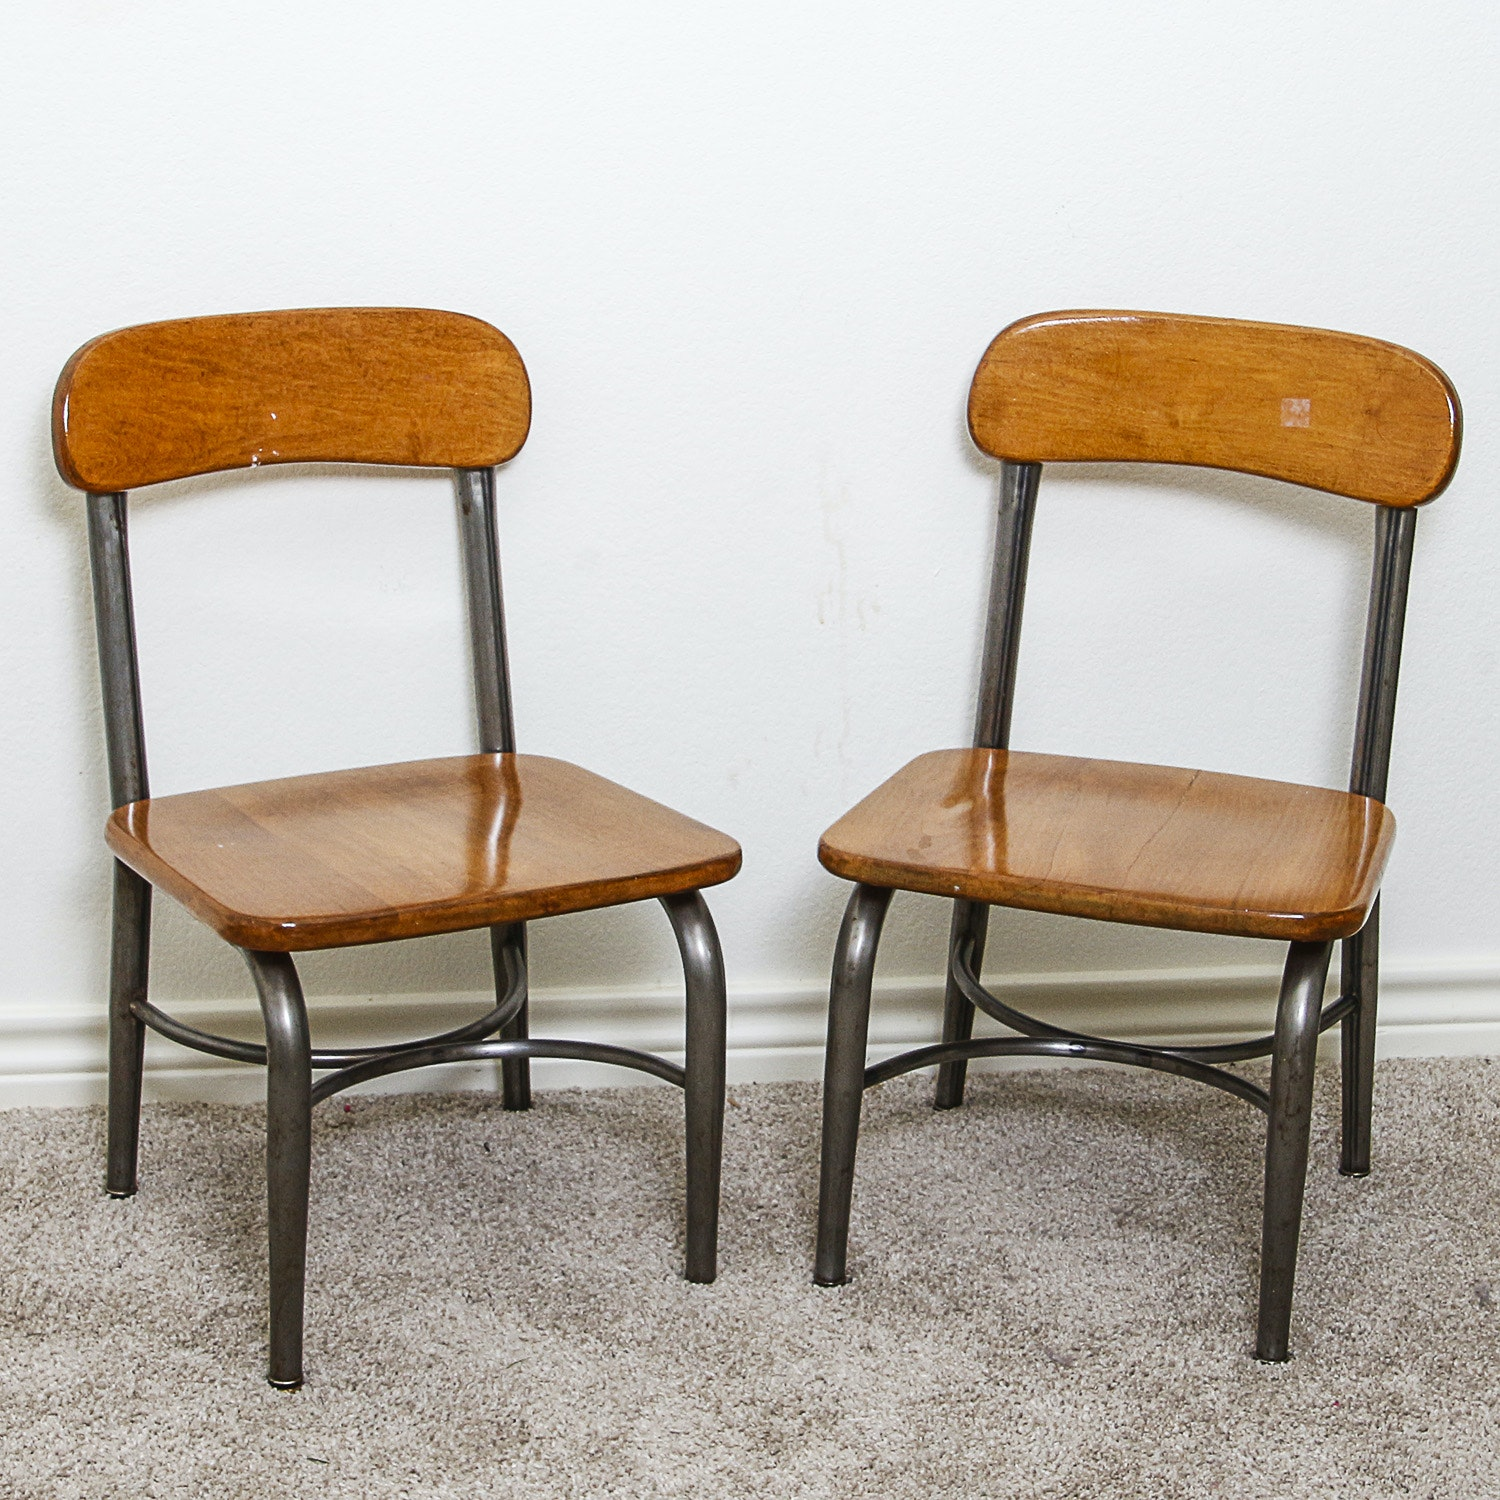 Pair of Vintage Student Chairs